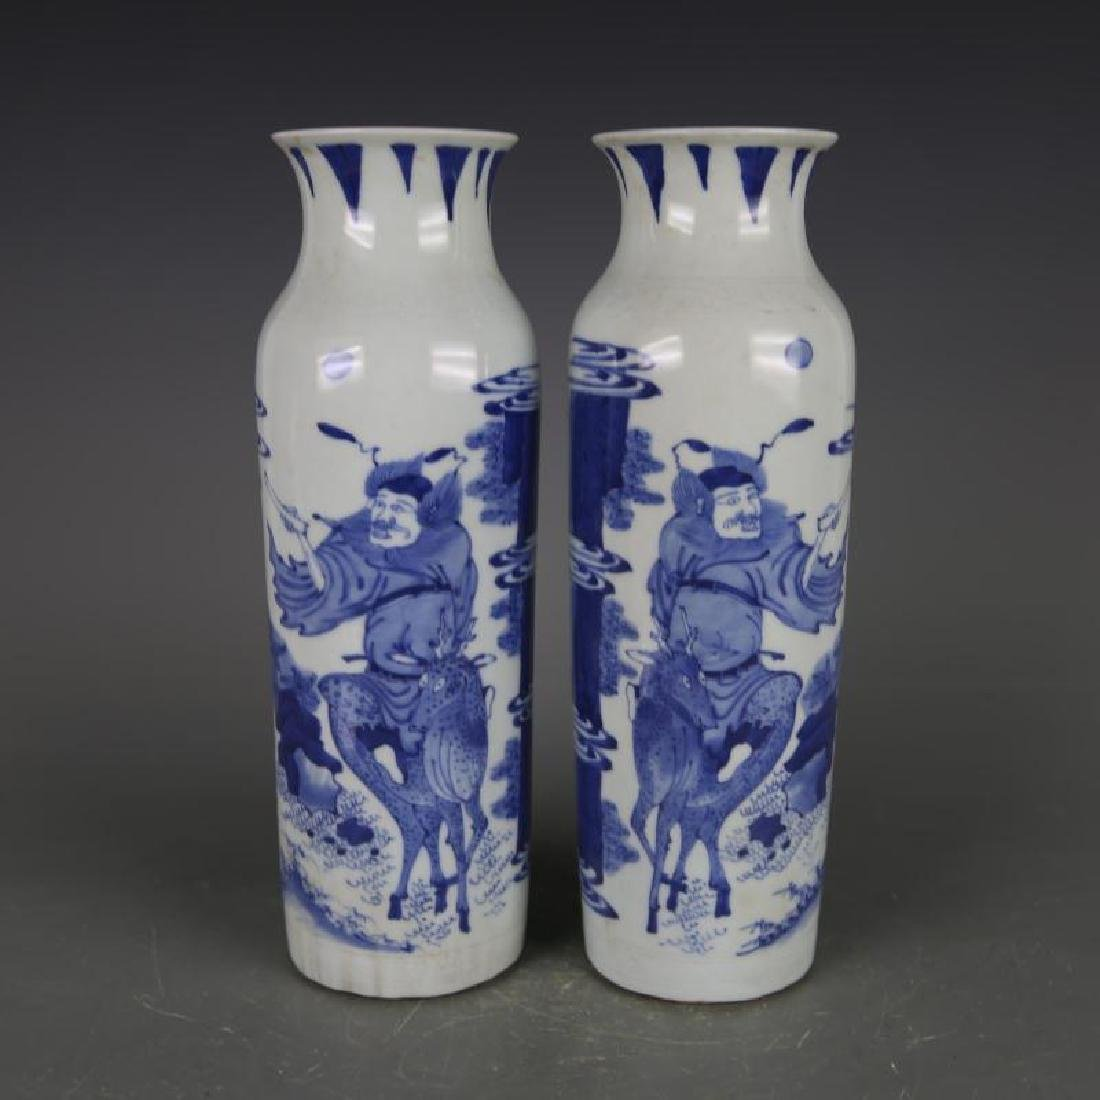 PAIR OF CHINESE PORCELAIN BLUE AND WHITE FIGURES VASES